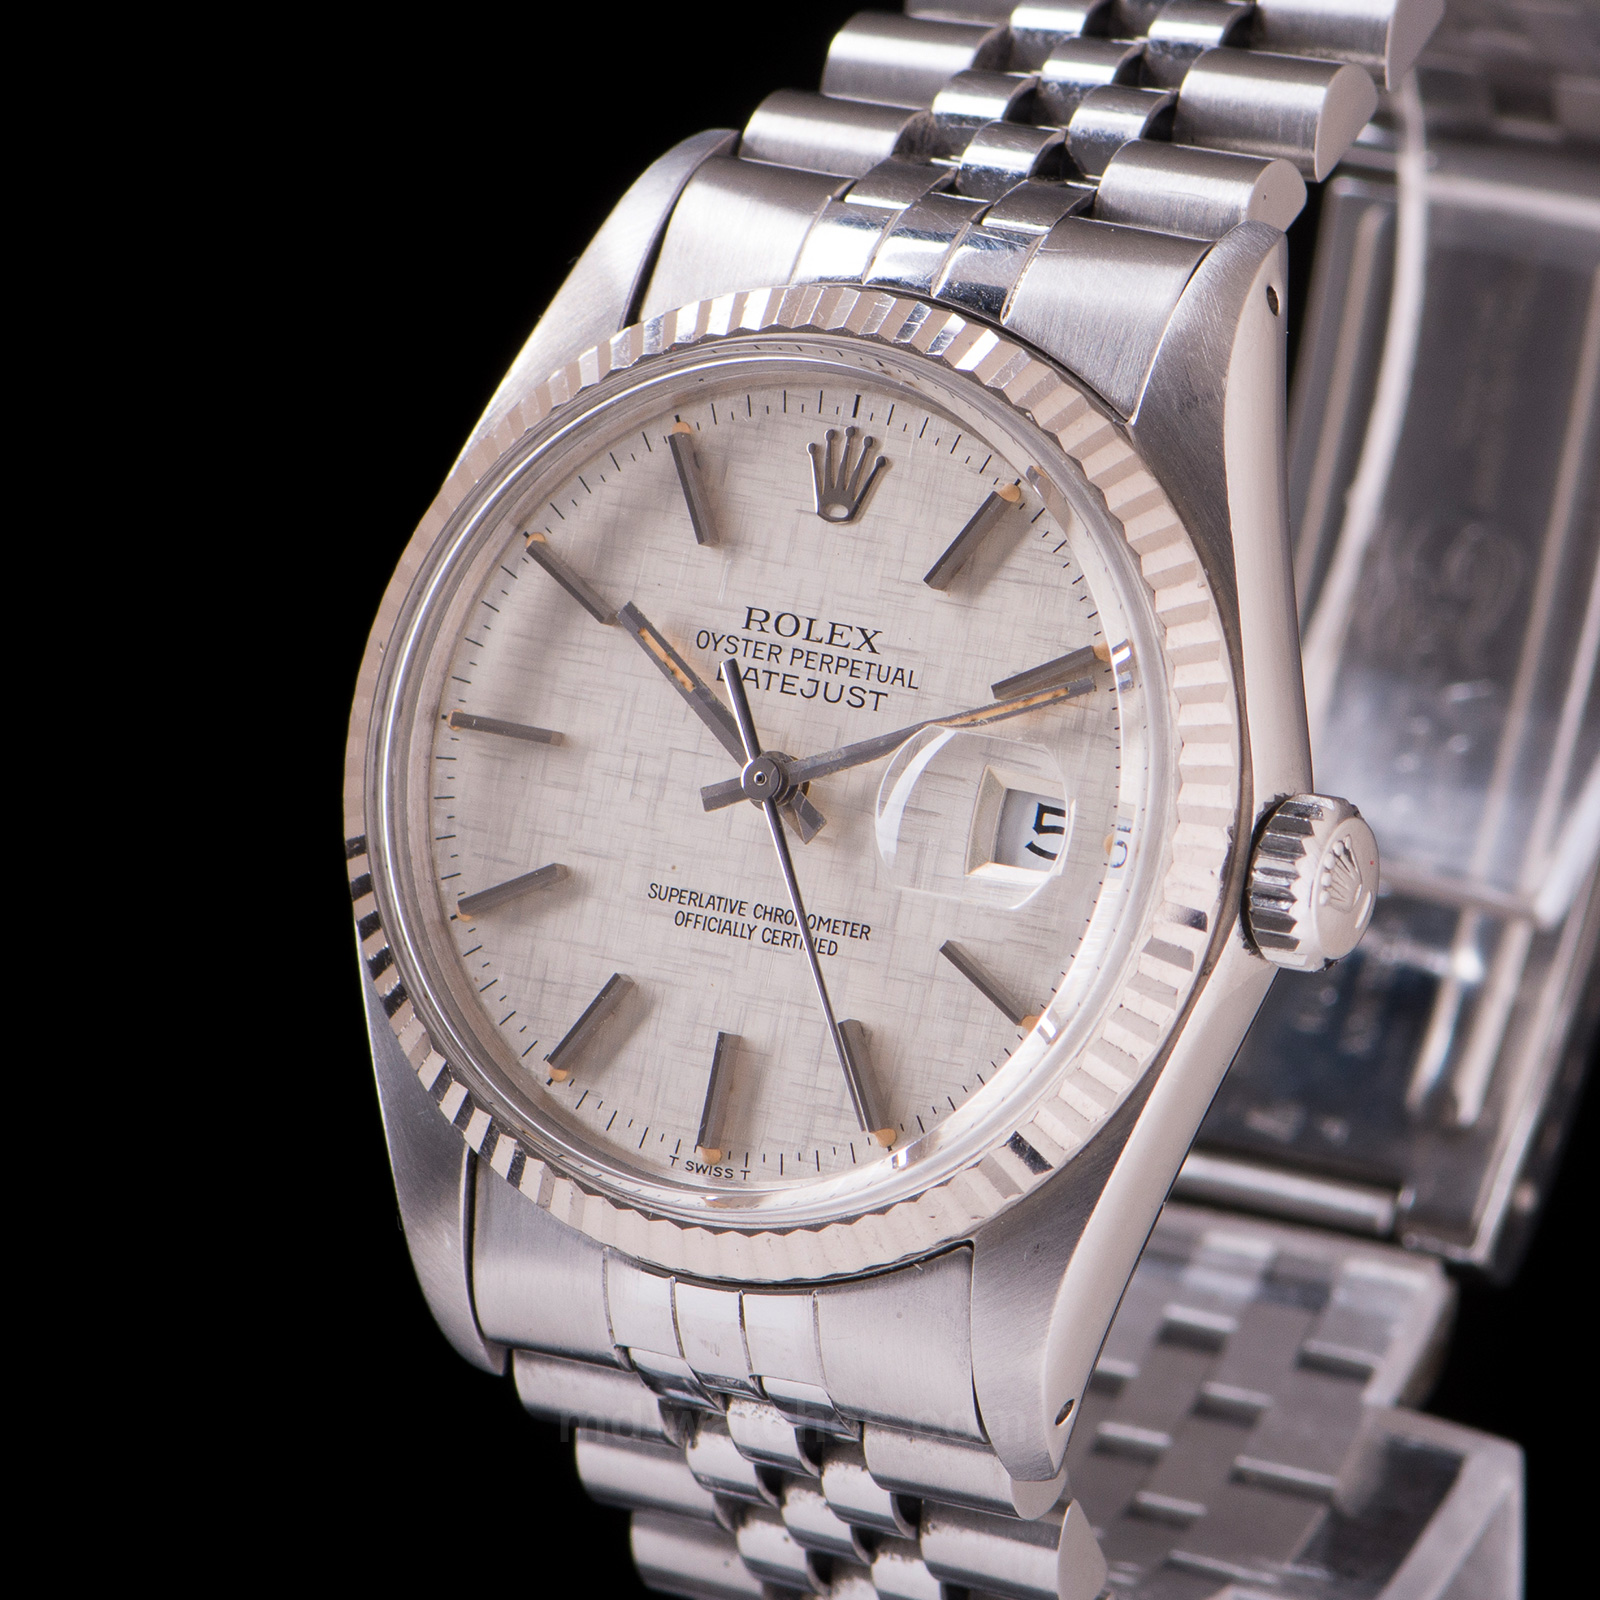 rolex oyster perpetual datejust ref 16014 36mm md watches. Black Bedroom Furniture Sets. Home Design Ideas